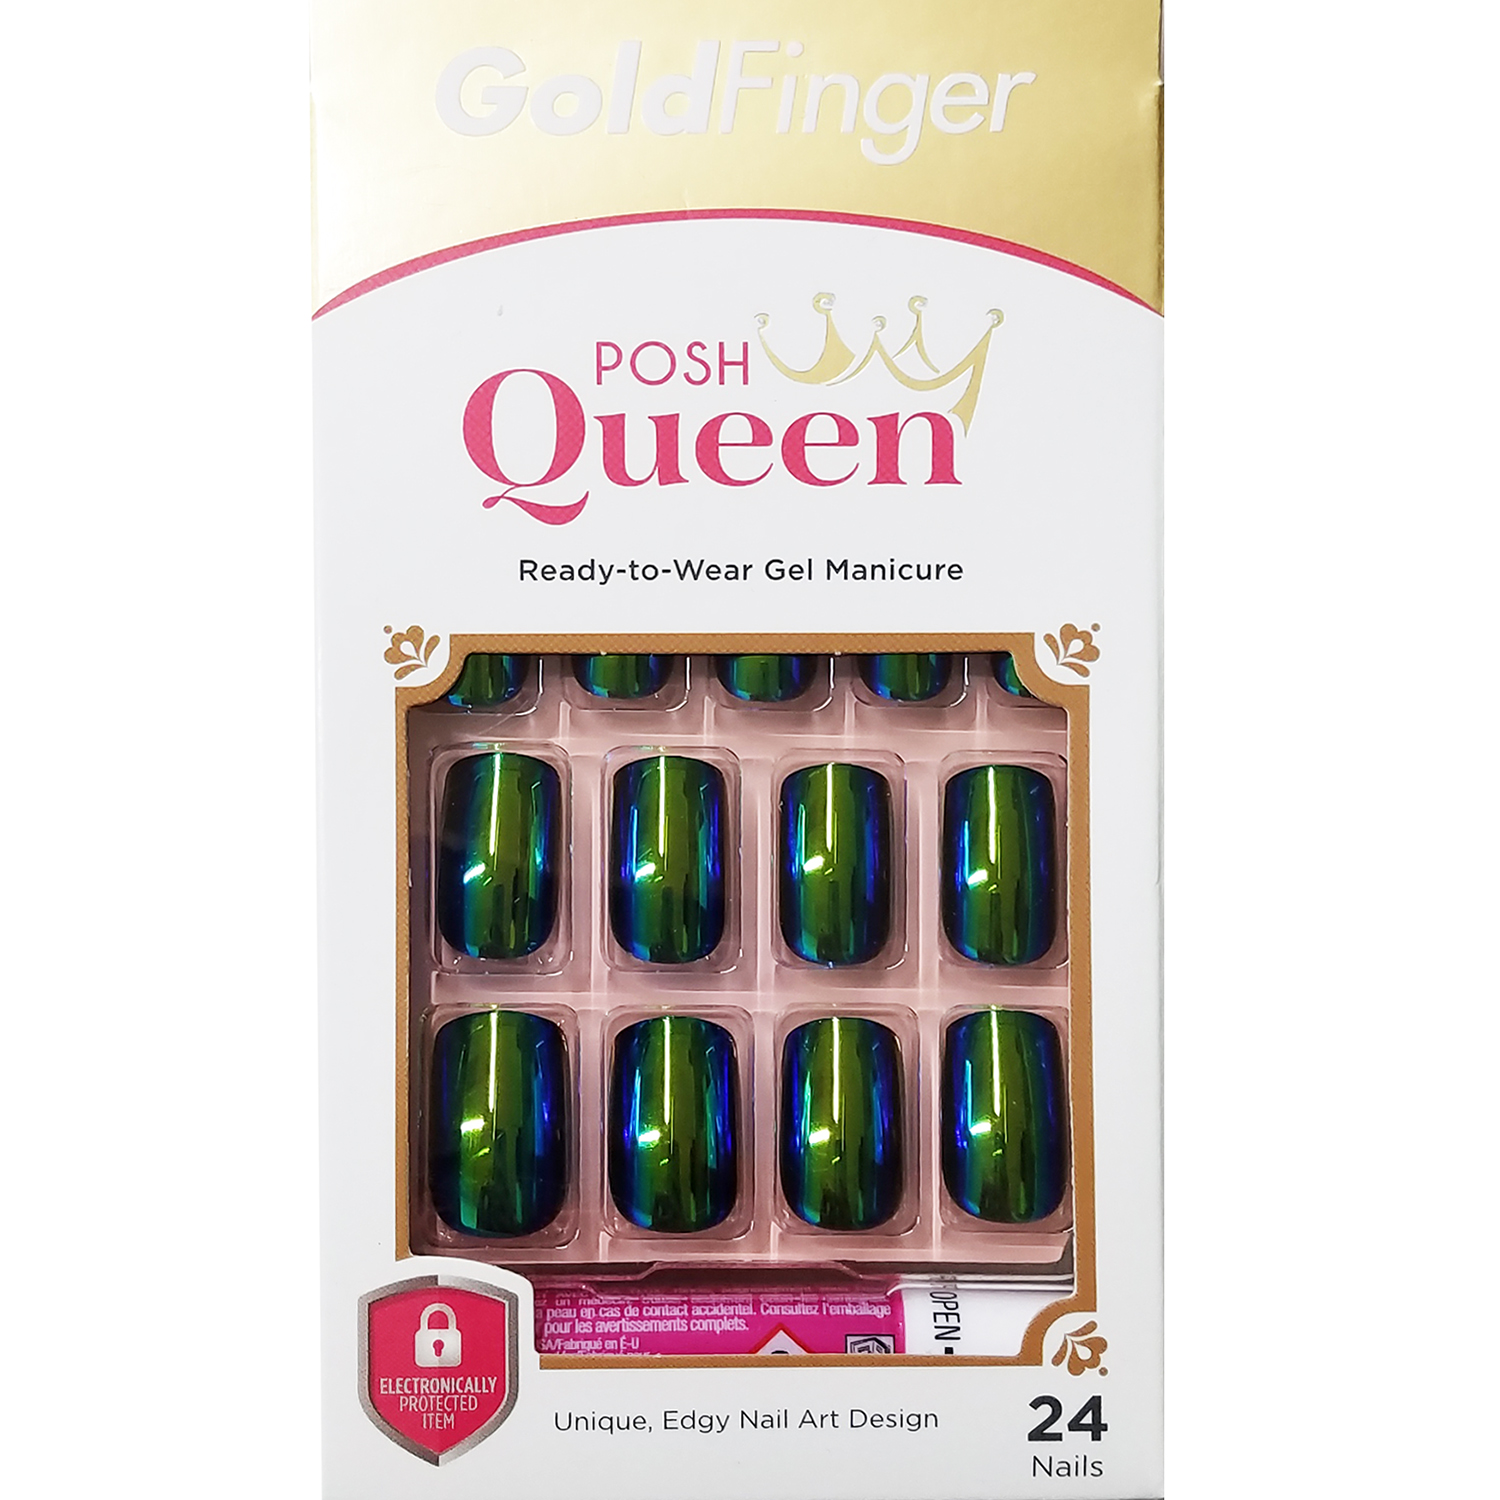 KISS GOLD FINGER POSH QUEEN 24 FULL COVER NAILS GLUE ON INCLUDED ...